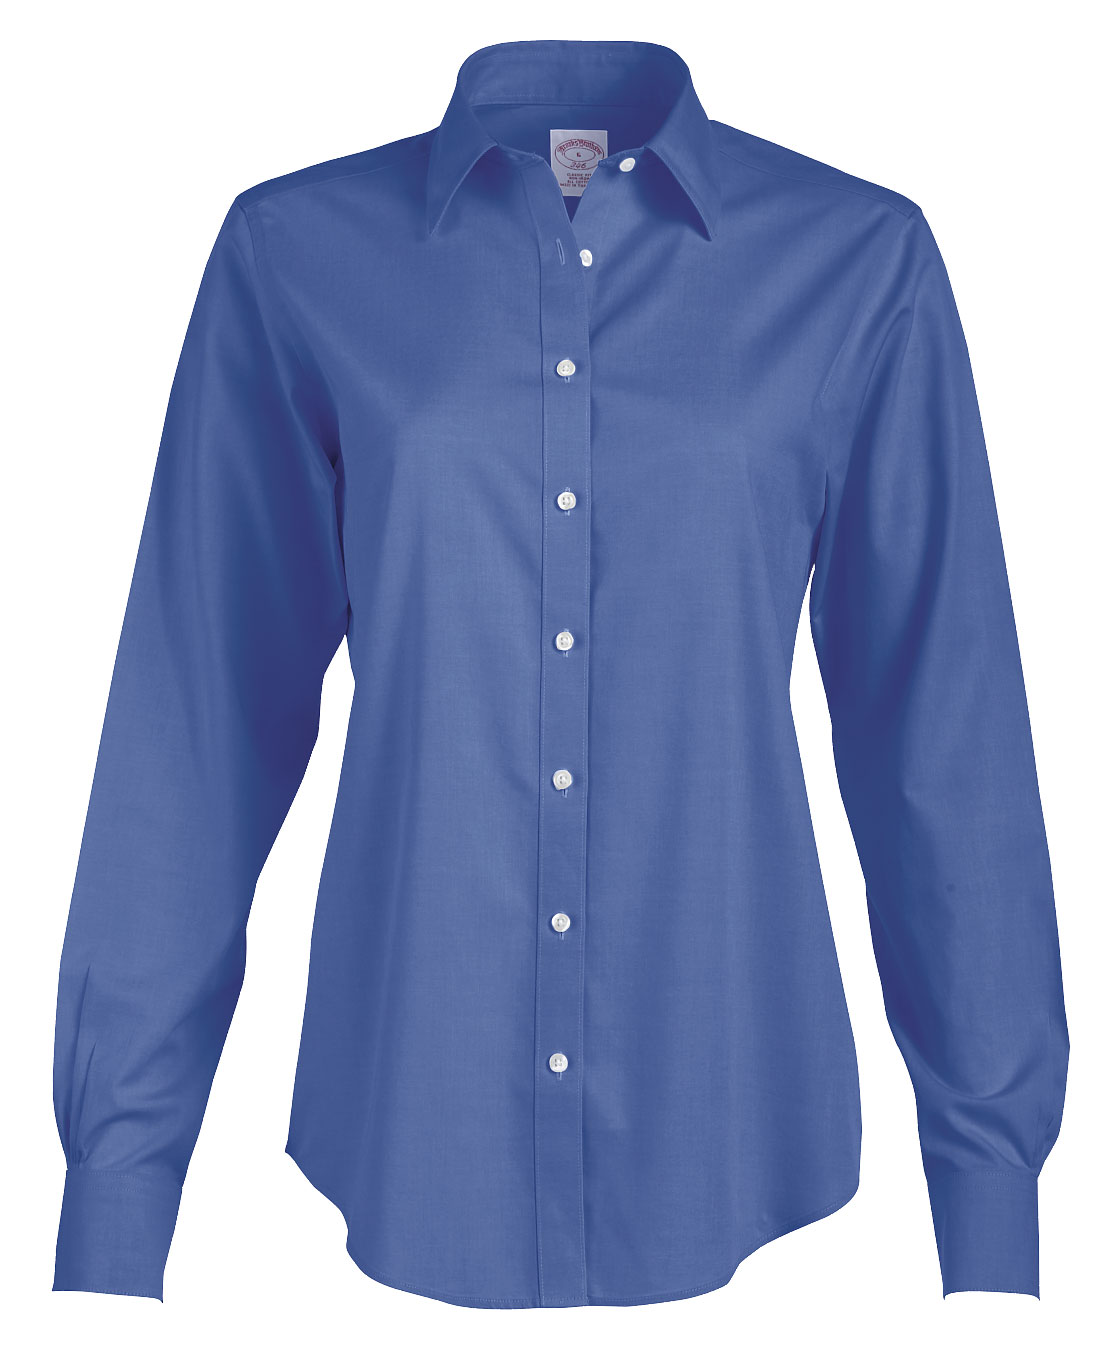 Brooks Brothers 346 Womens Non-Iron Pinpoint Dress Shirt